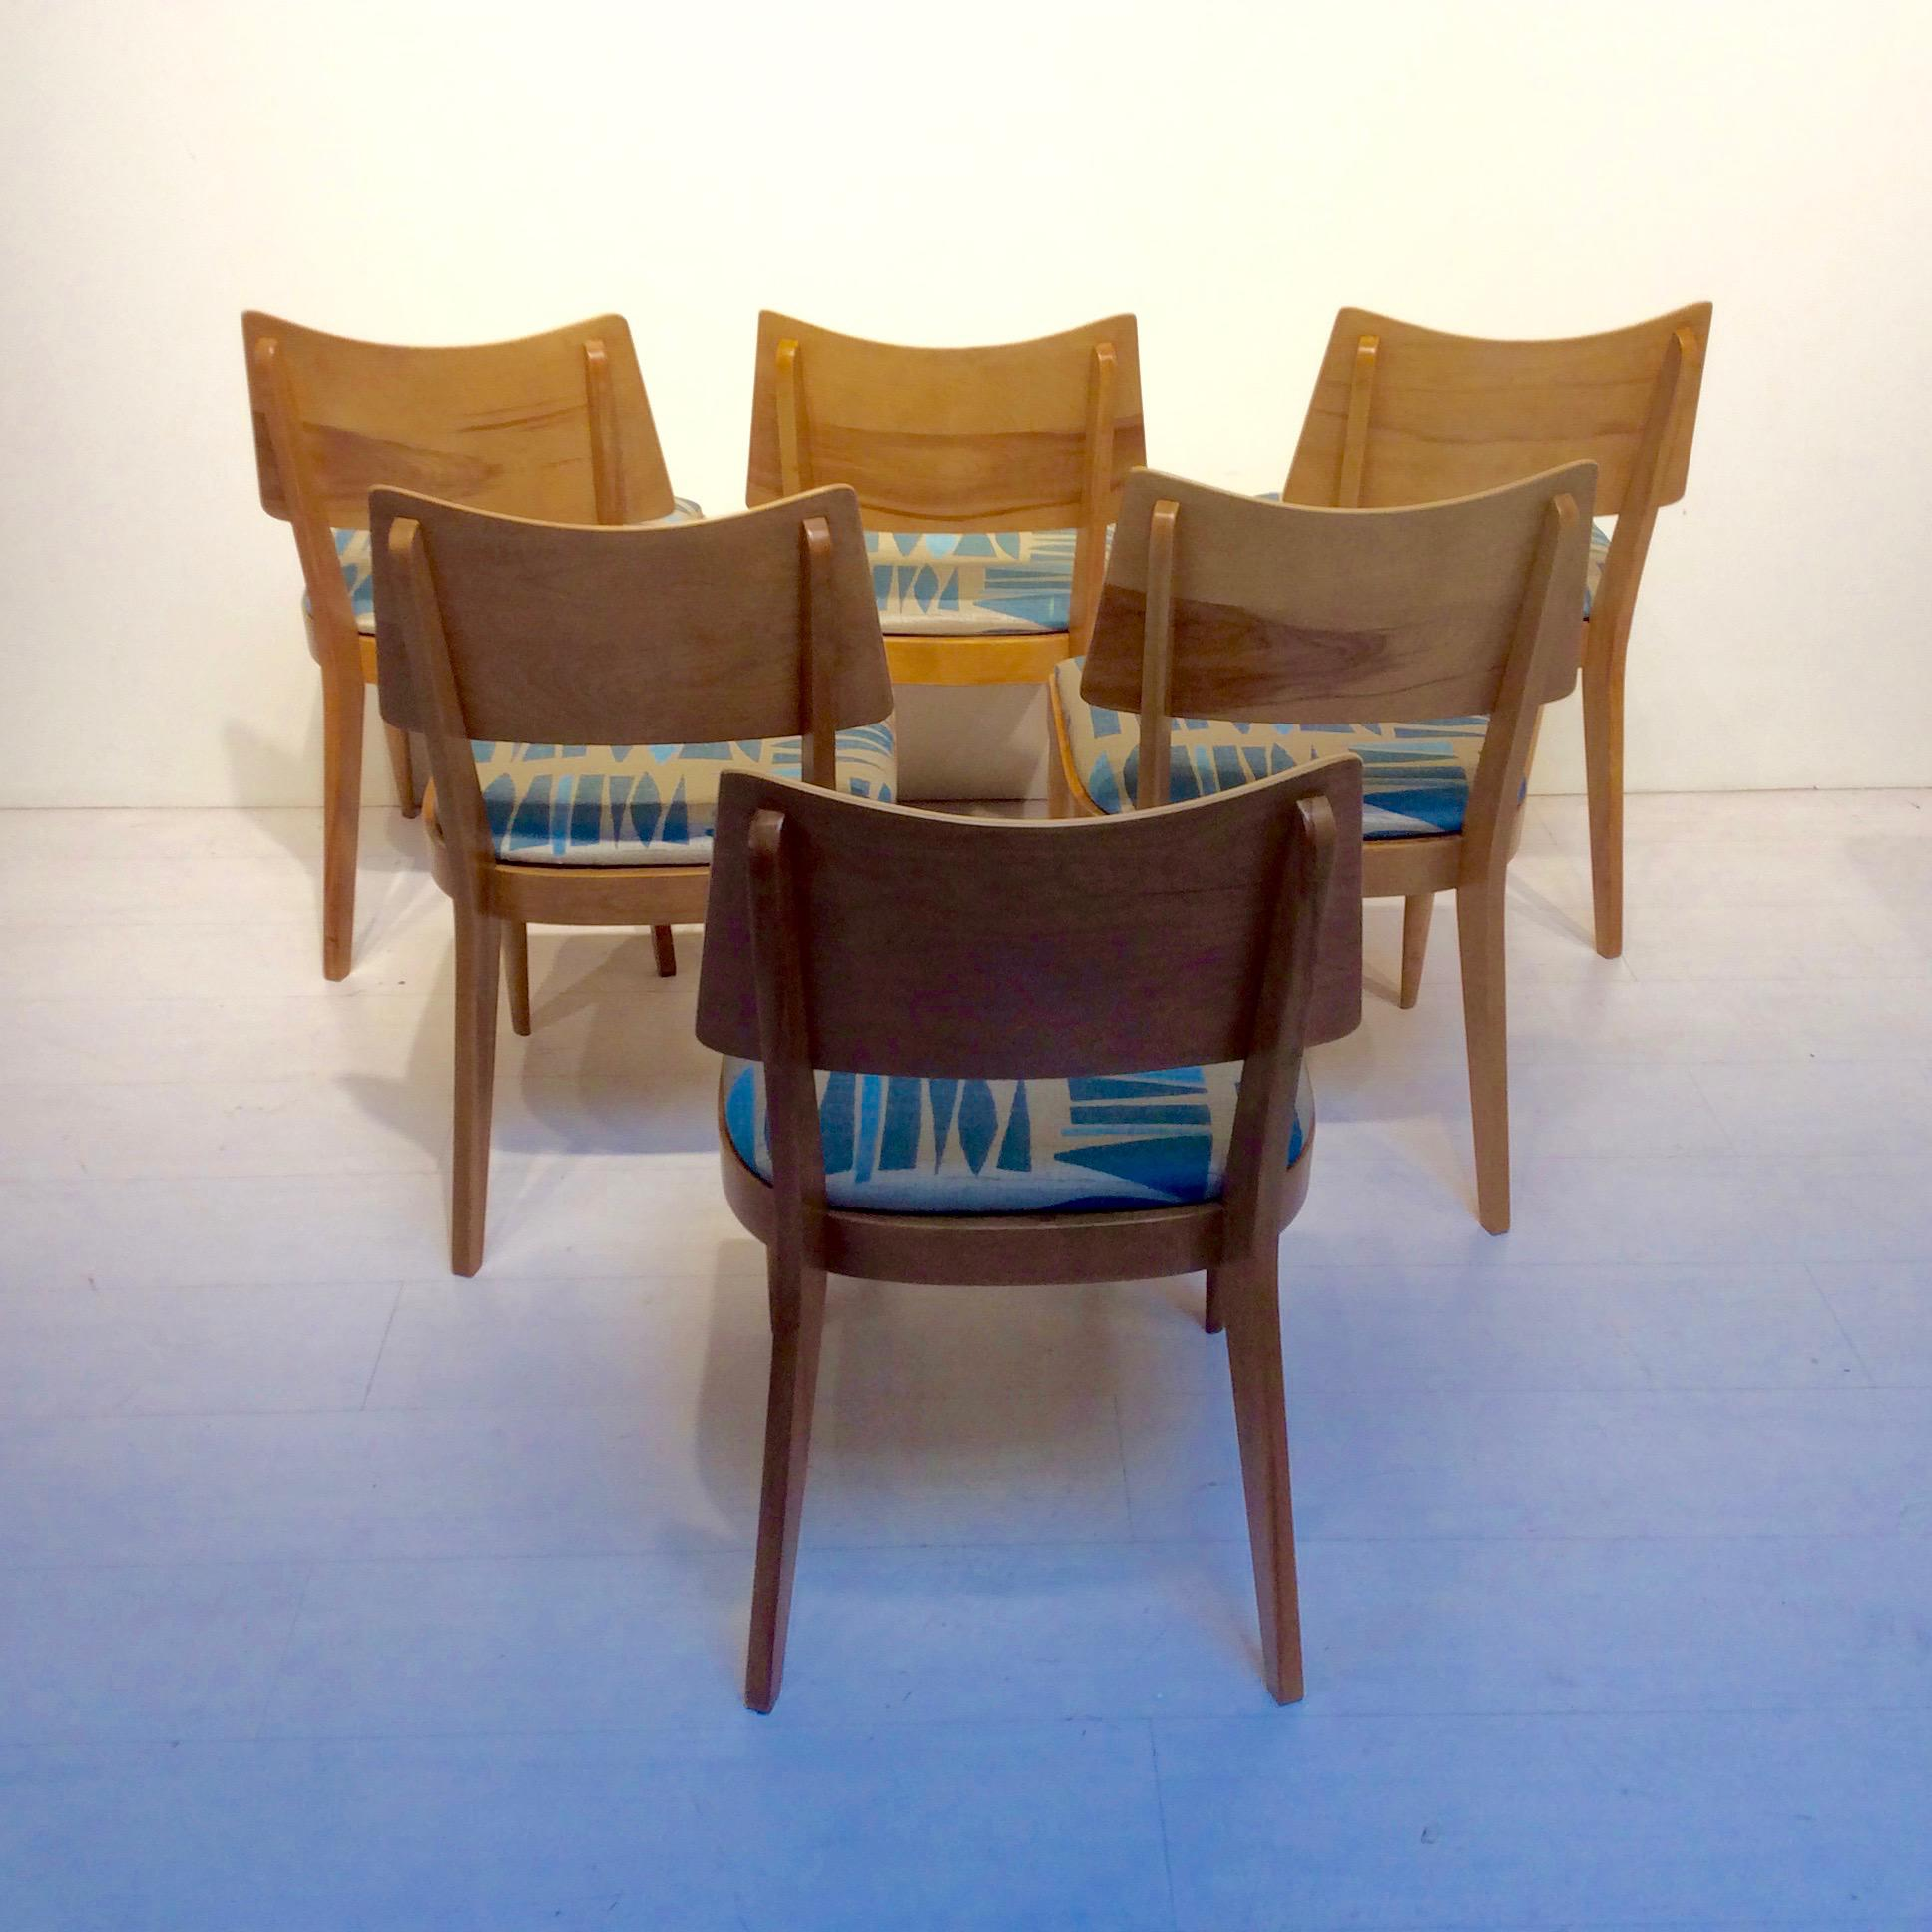 1950s Mid Century Modern Heywood Wakefield Dining Chairs  Set Of 6 For Sale